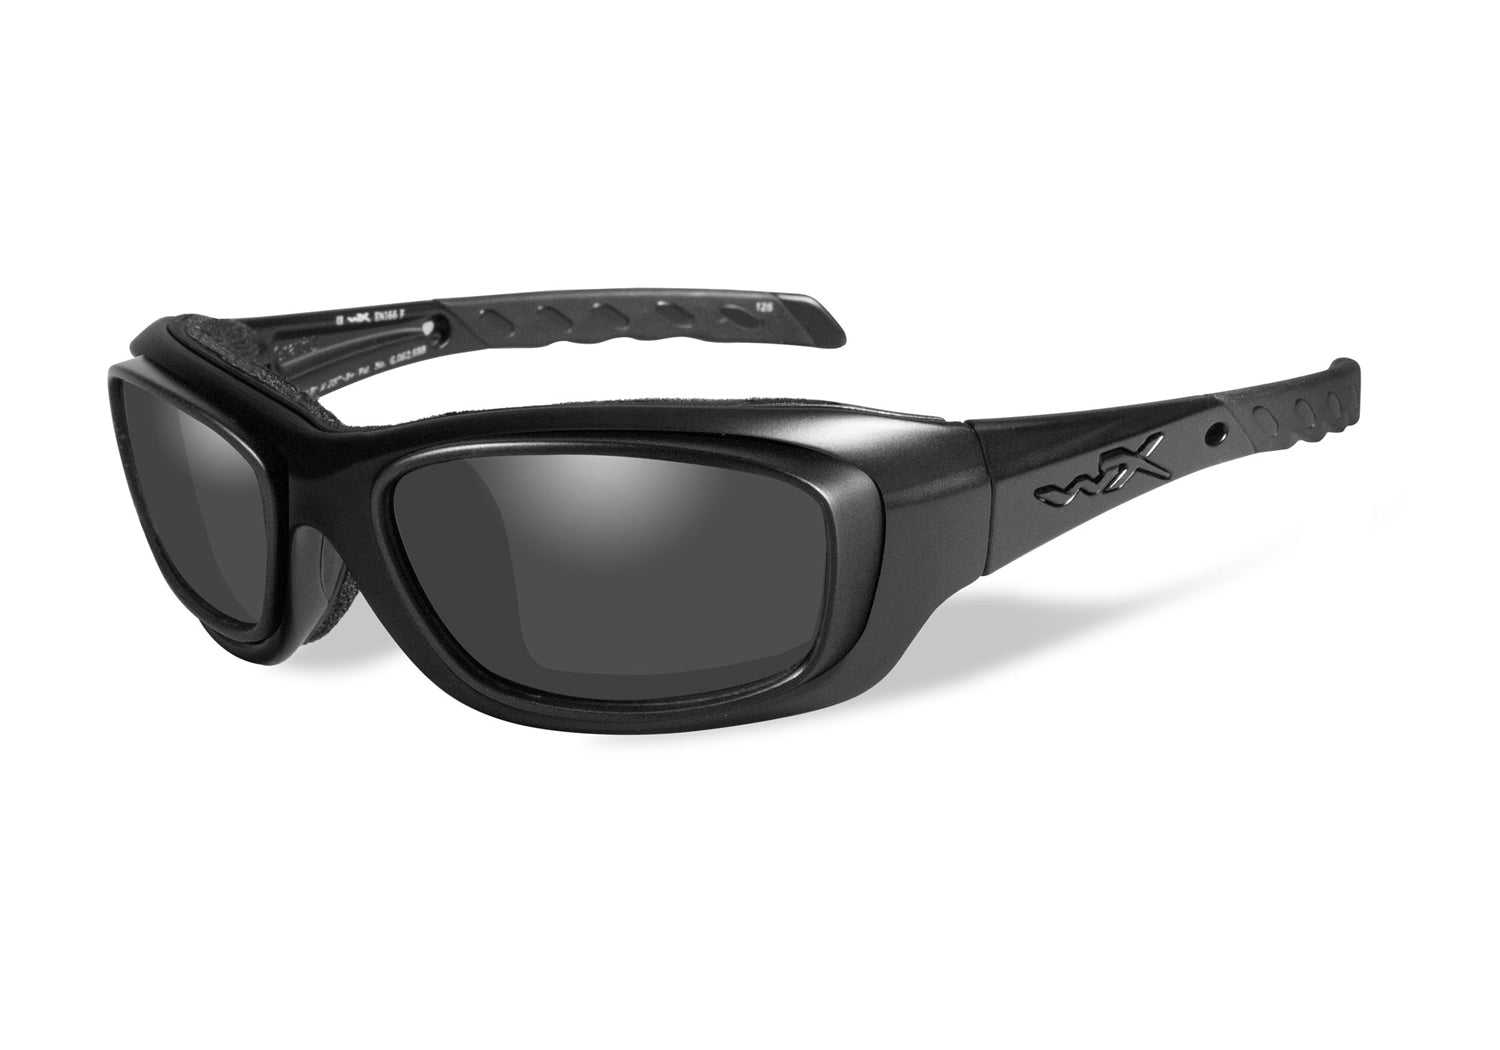 Wiley X WX Gravity Rim Prescription Sunglasses